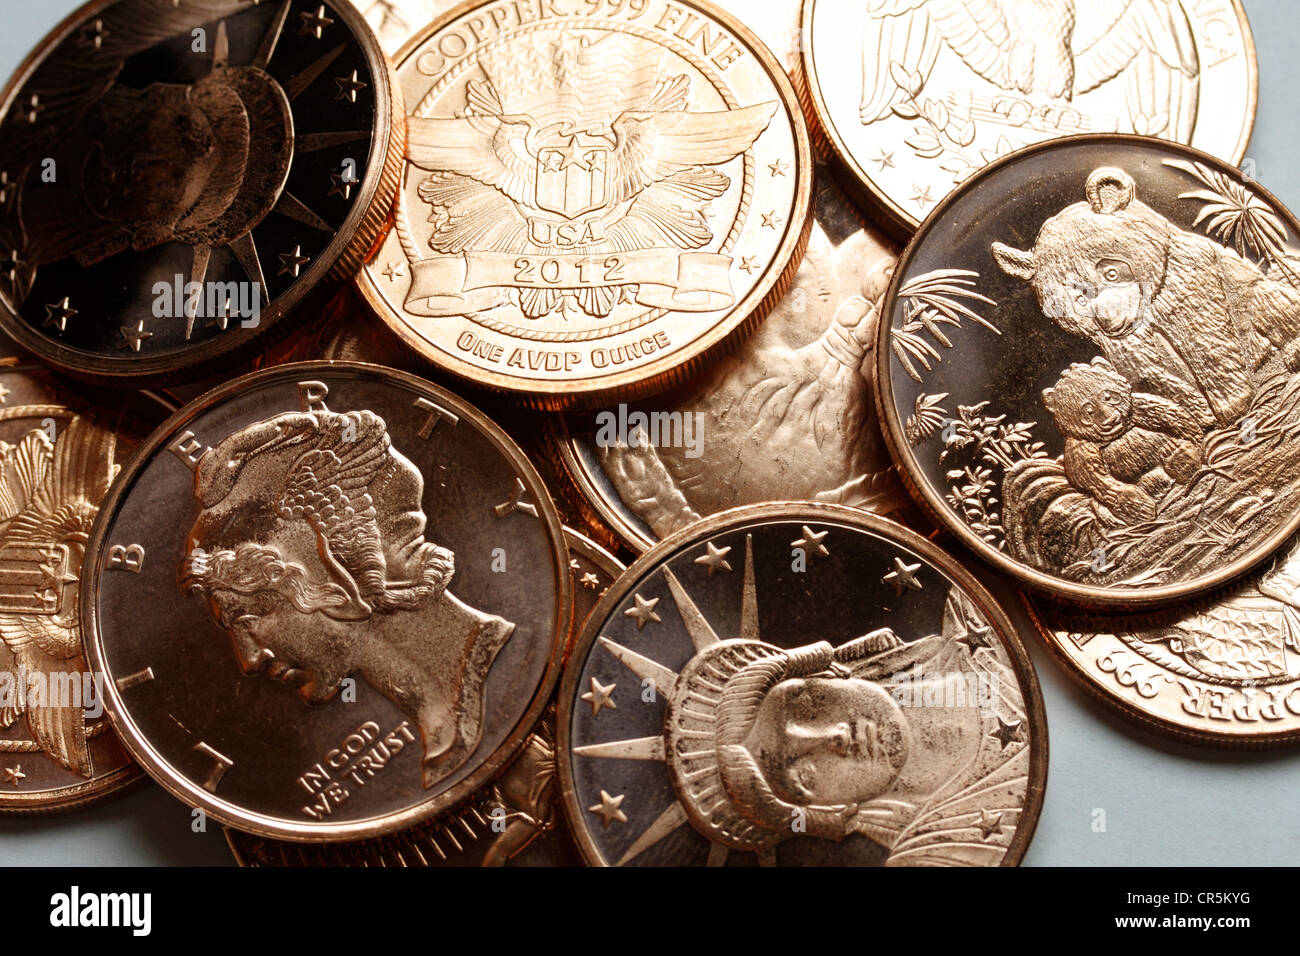 1 ounce copper coins - popular with preppers for use as currency in a post apocalyptic world - Stock Image